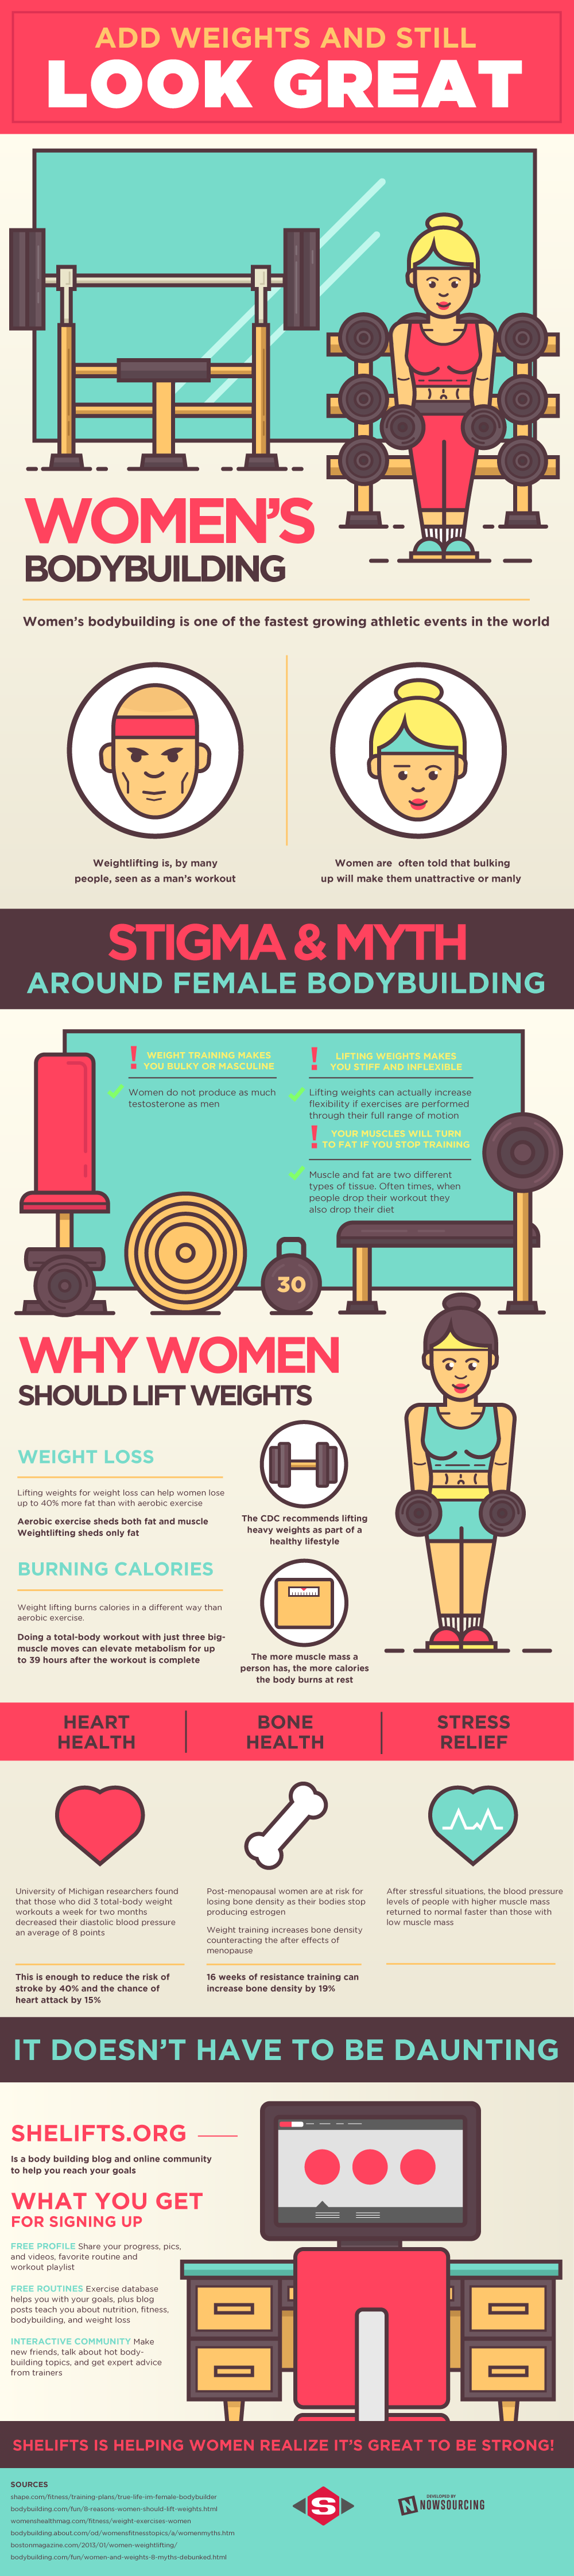 women bodybuilding myths